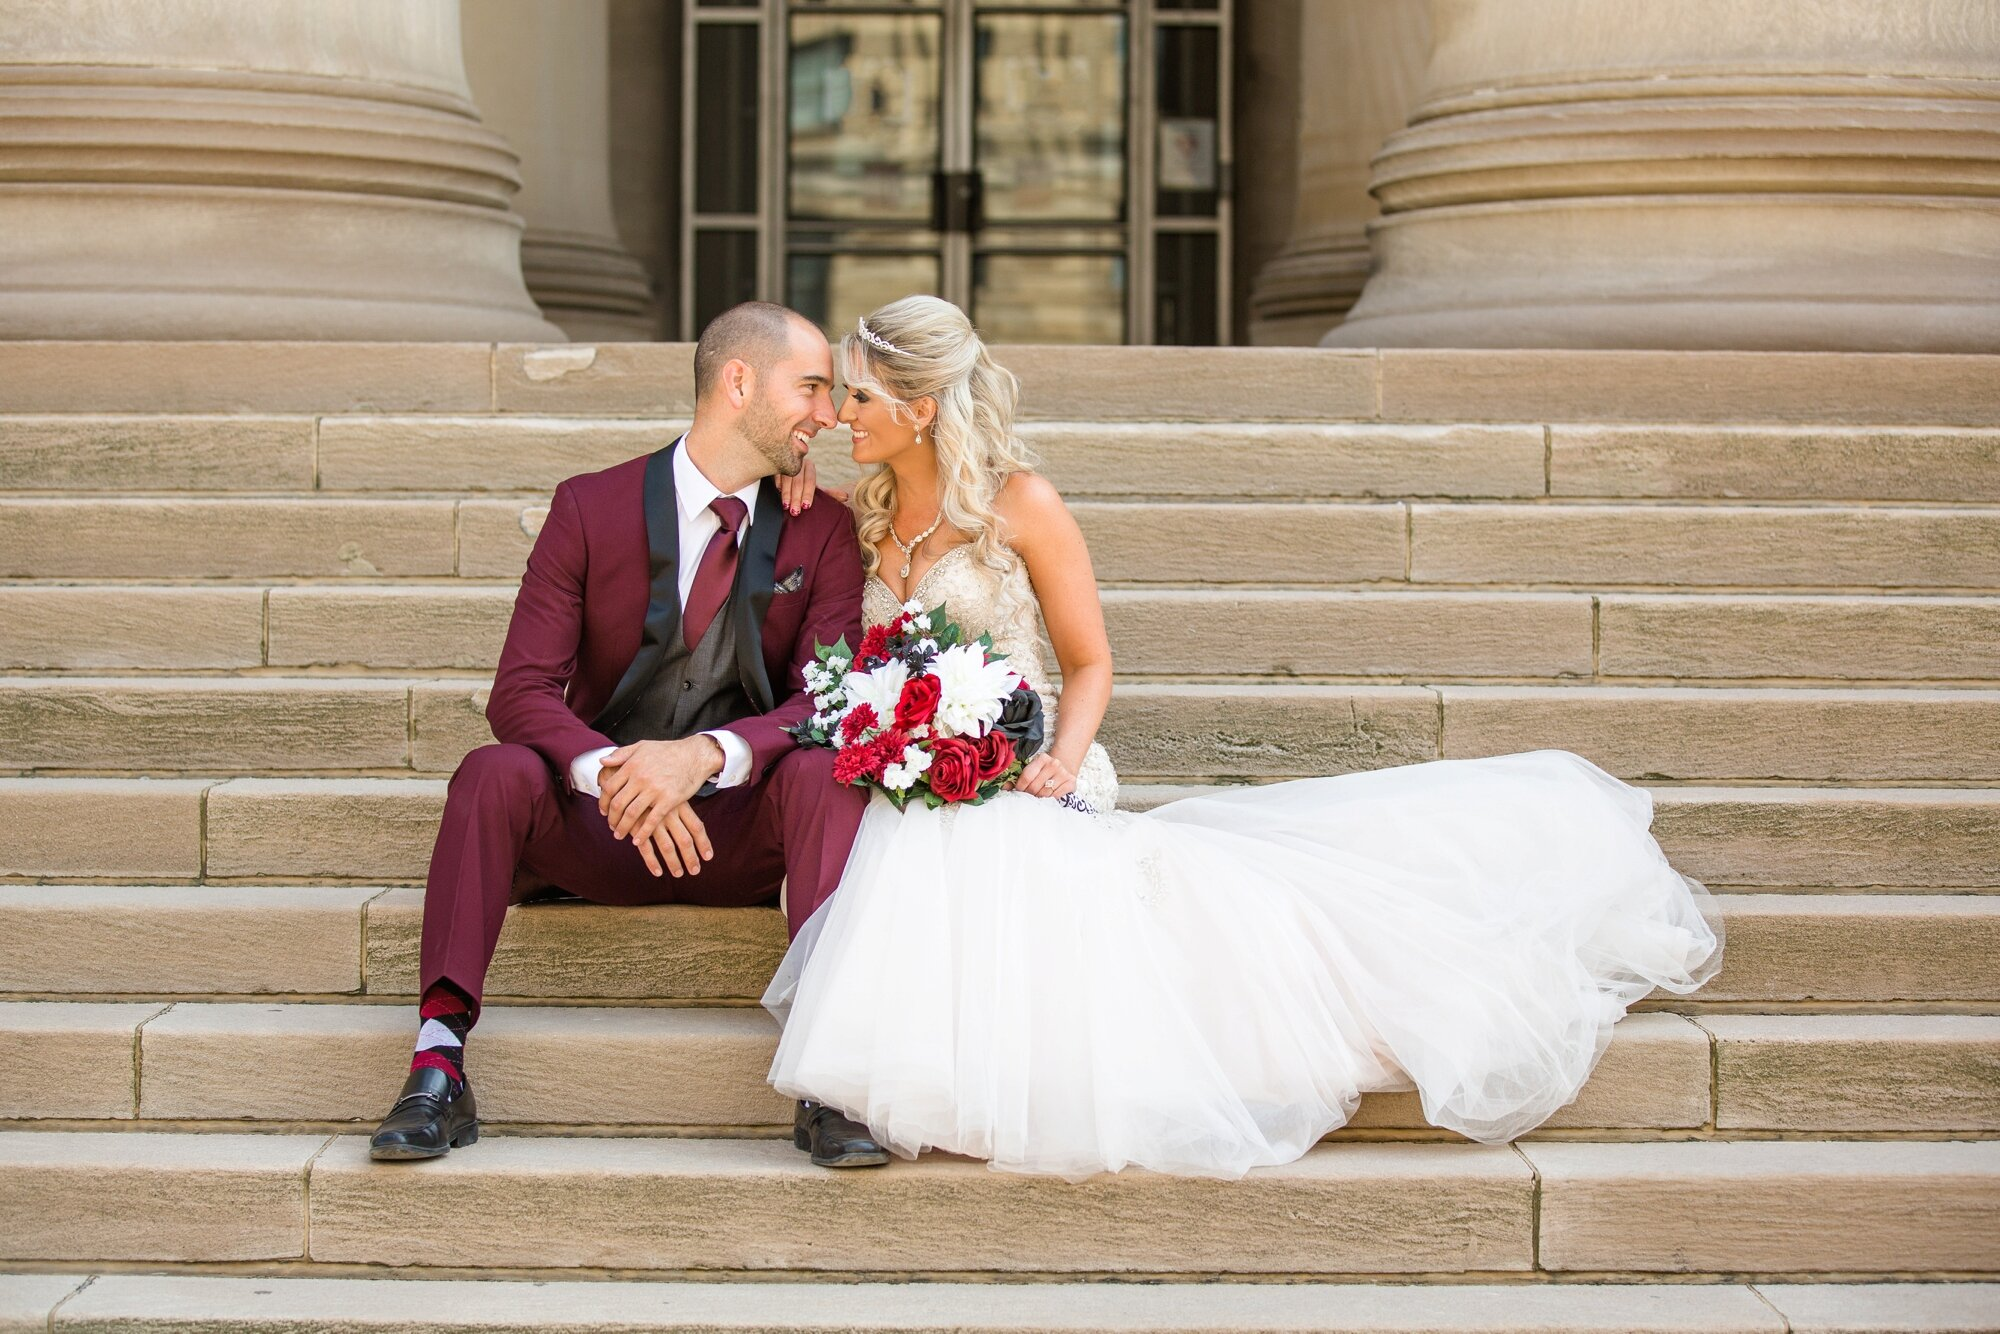 pittsburgh wedding photographer, mellon institute wedding pictures, j verno studios wedding photos, pittsburgh wedding venues